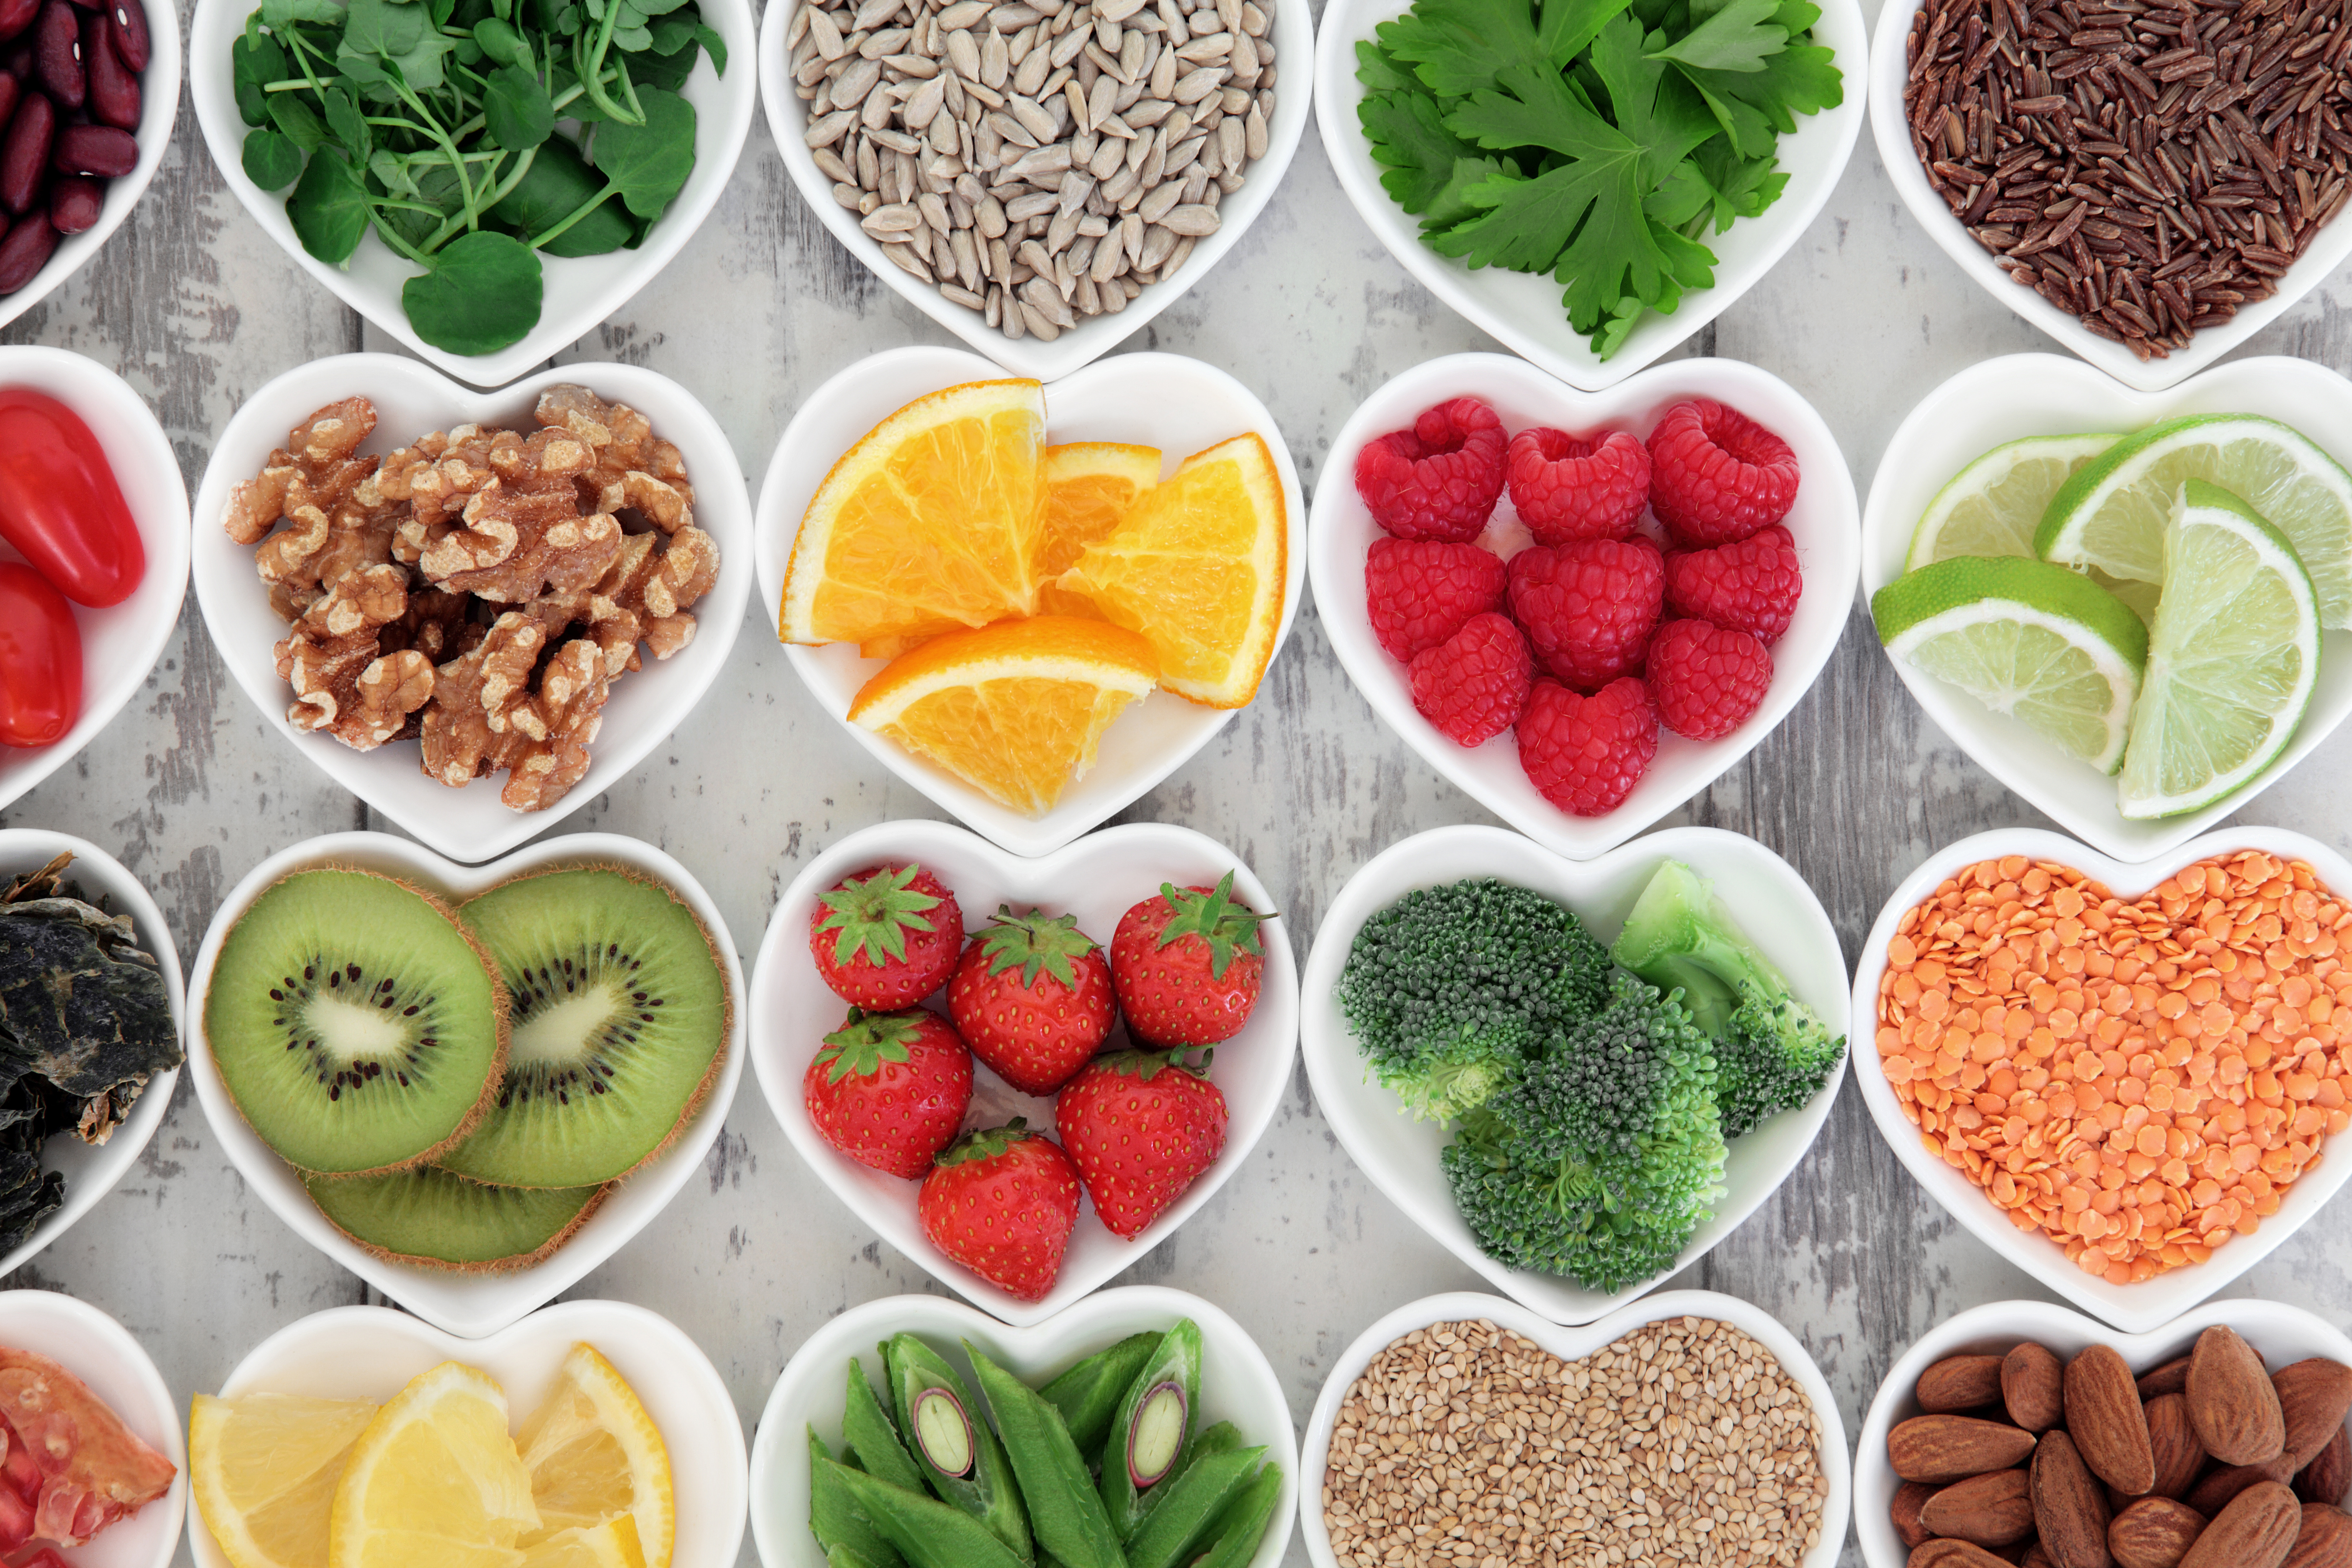 Super food selection for health diet in porcelain bowls over distressed wooden background.